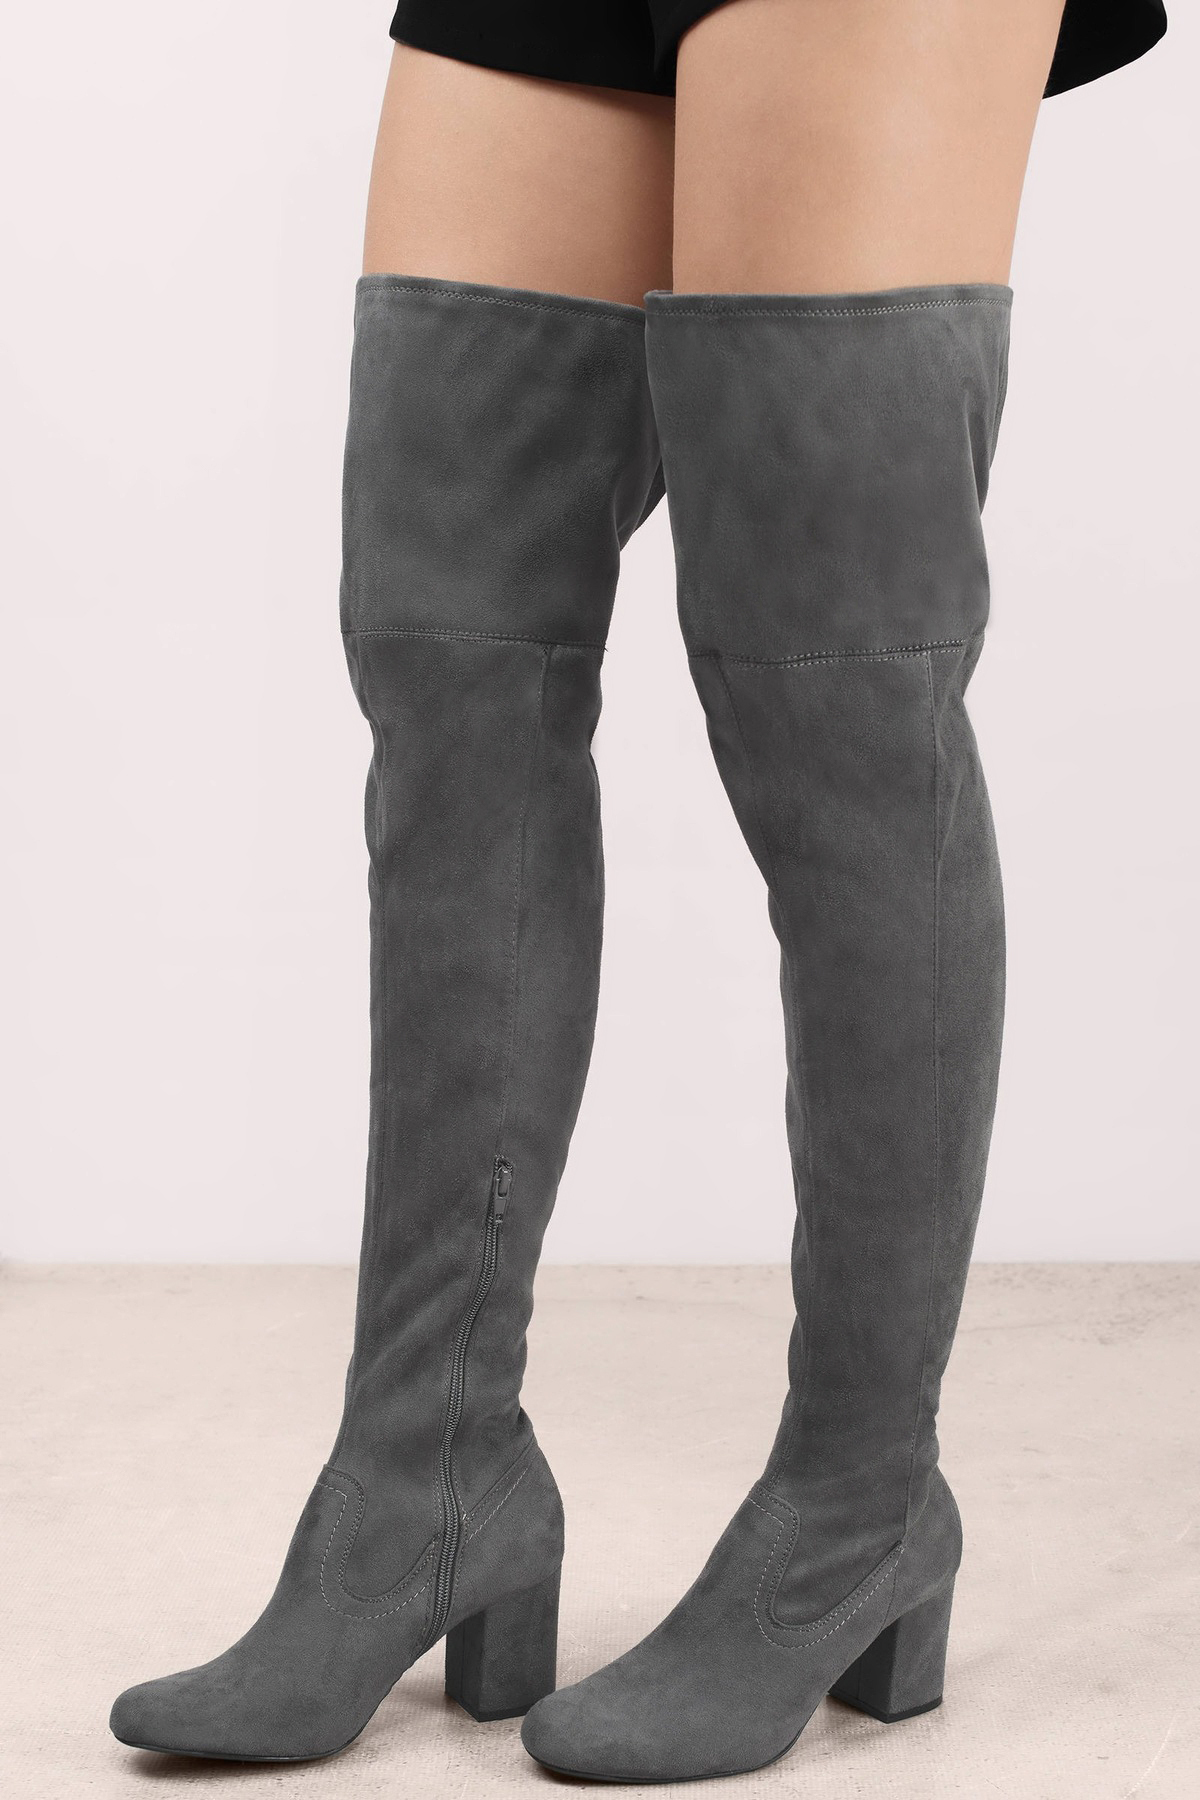 Grey Boots - Grey Boots - Thigh High Boots - $98.00